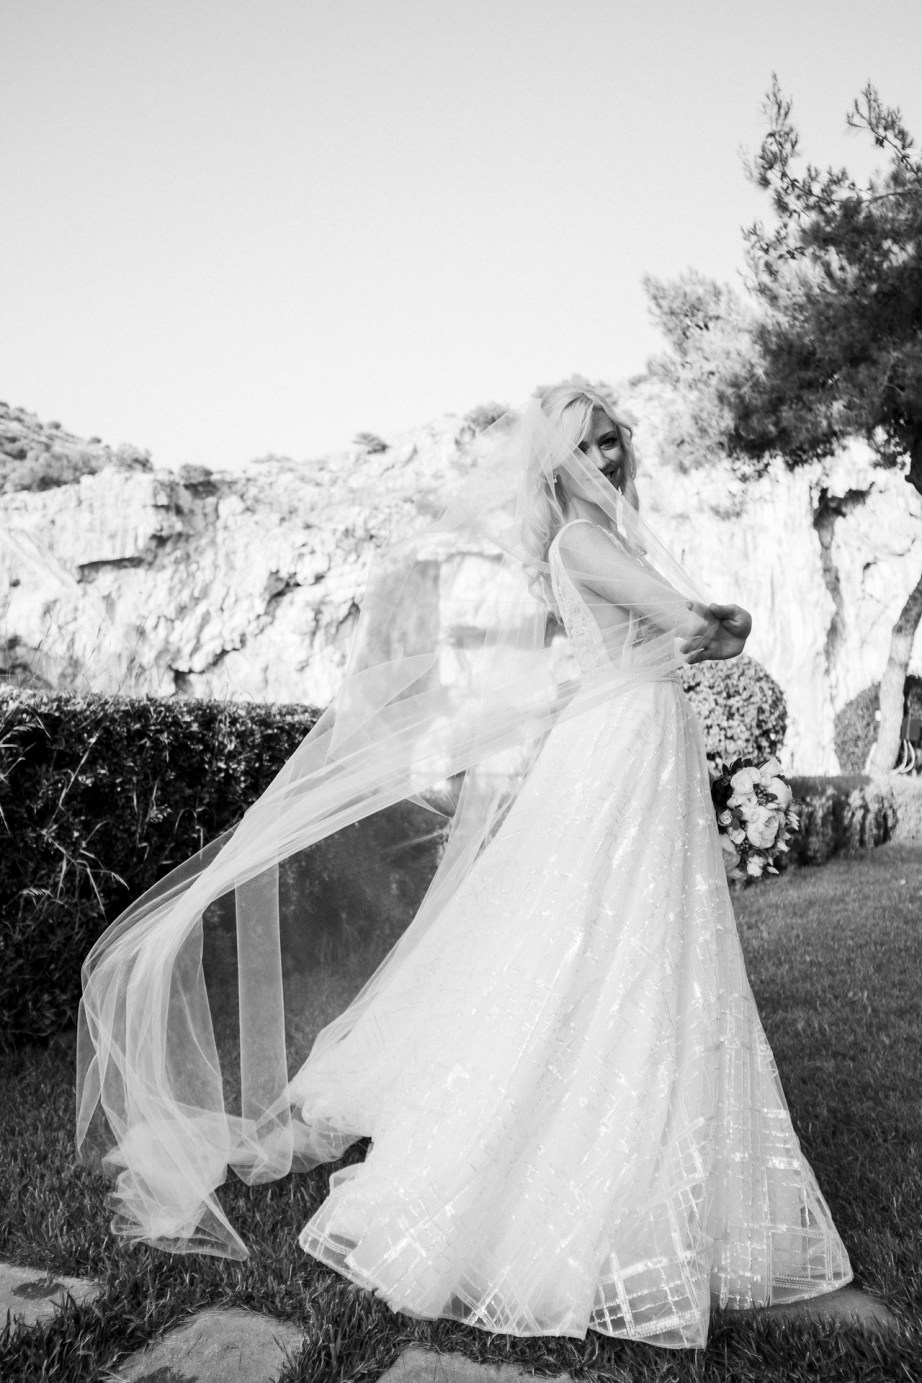 Lake_vouliagmeni_greece_weddings_nicole_caldwell_57